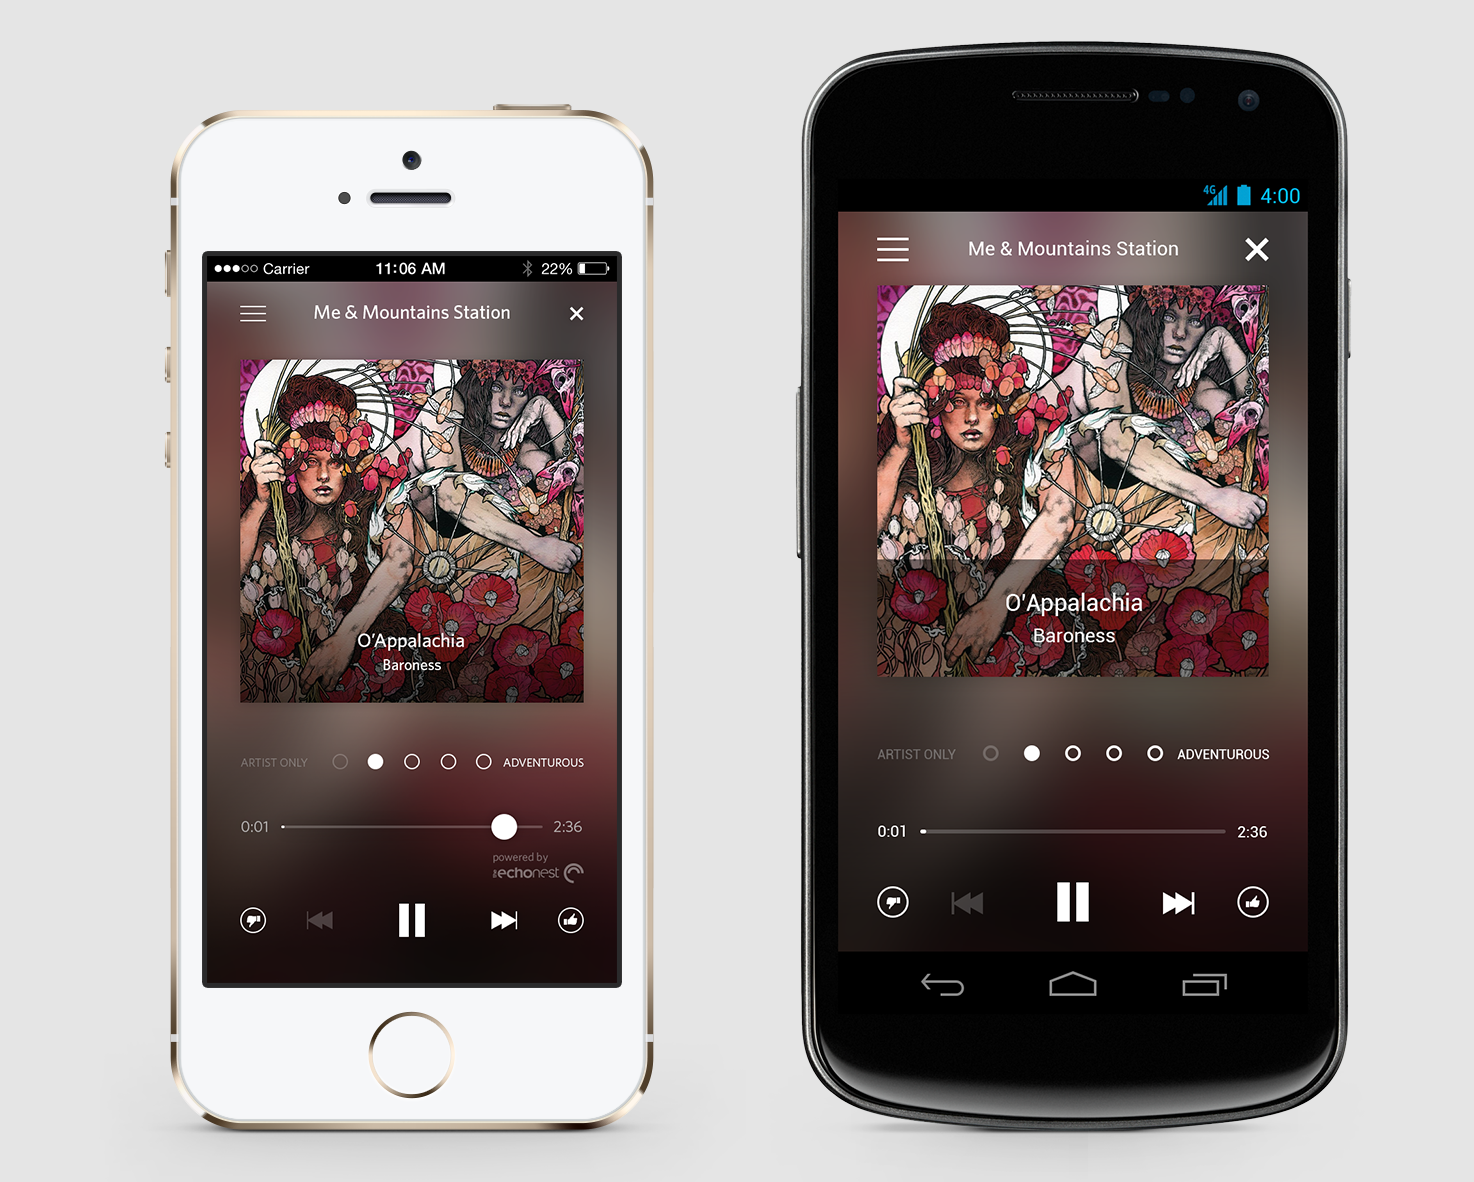 Rdio ups the streaming music ante, brings unlimited free listening to mobile users